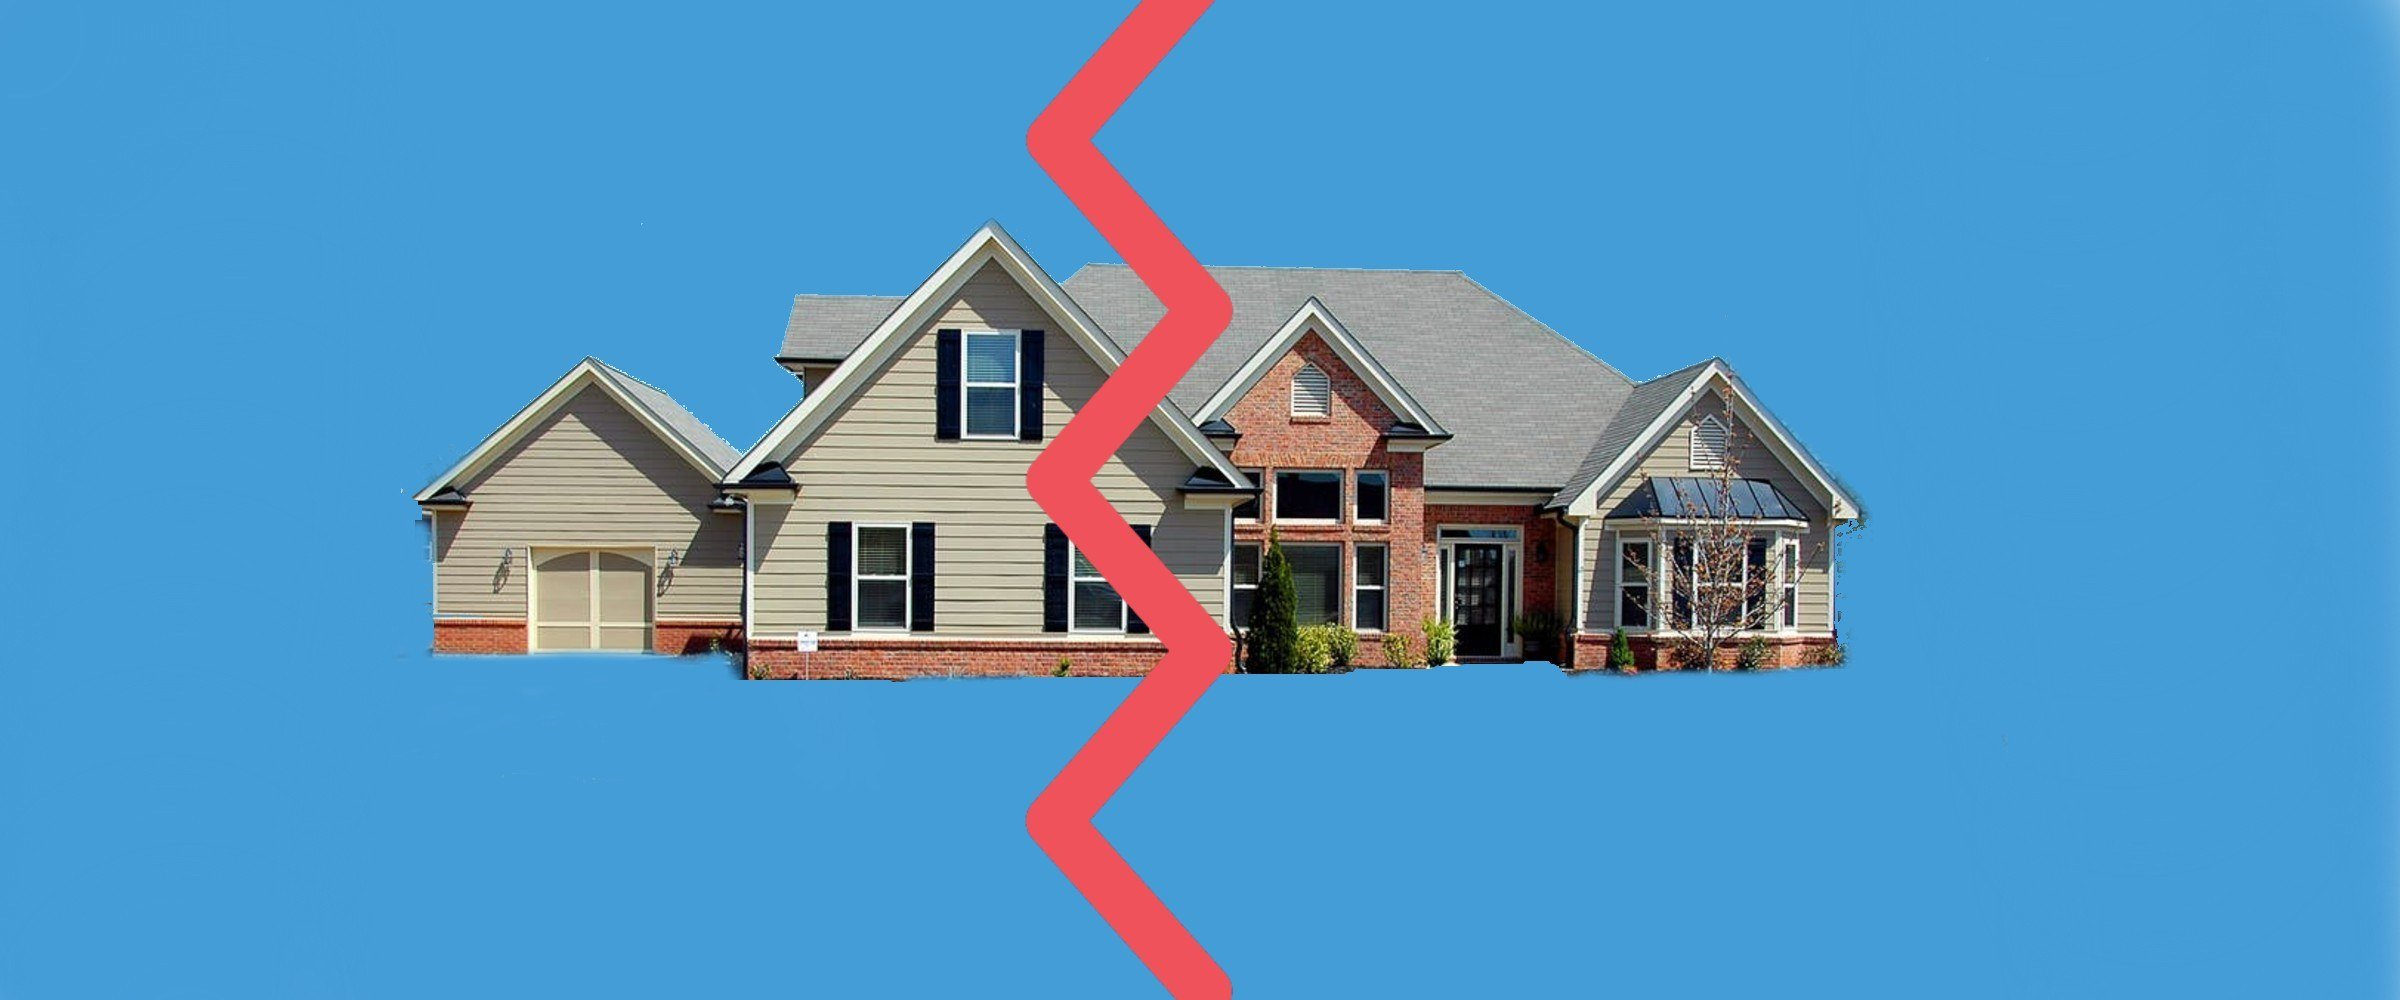 divorce and mortgage divided home